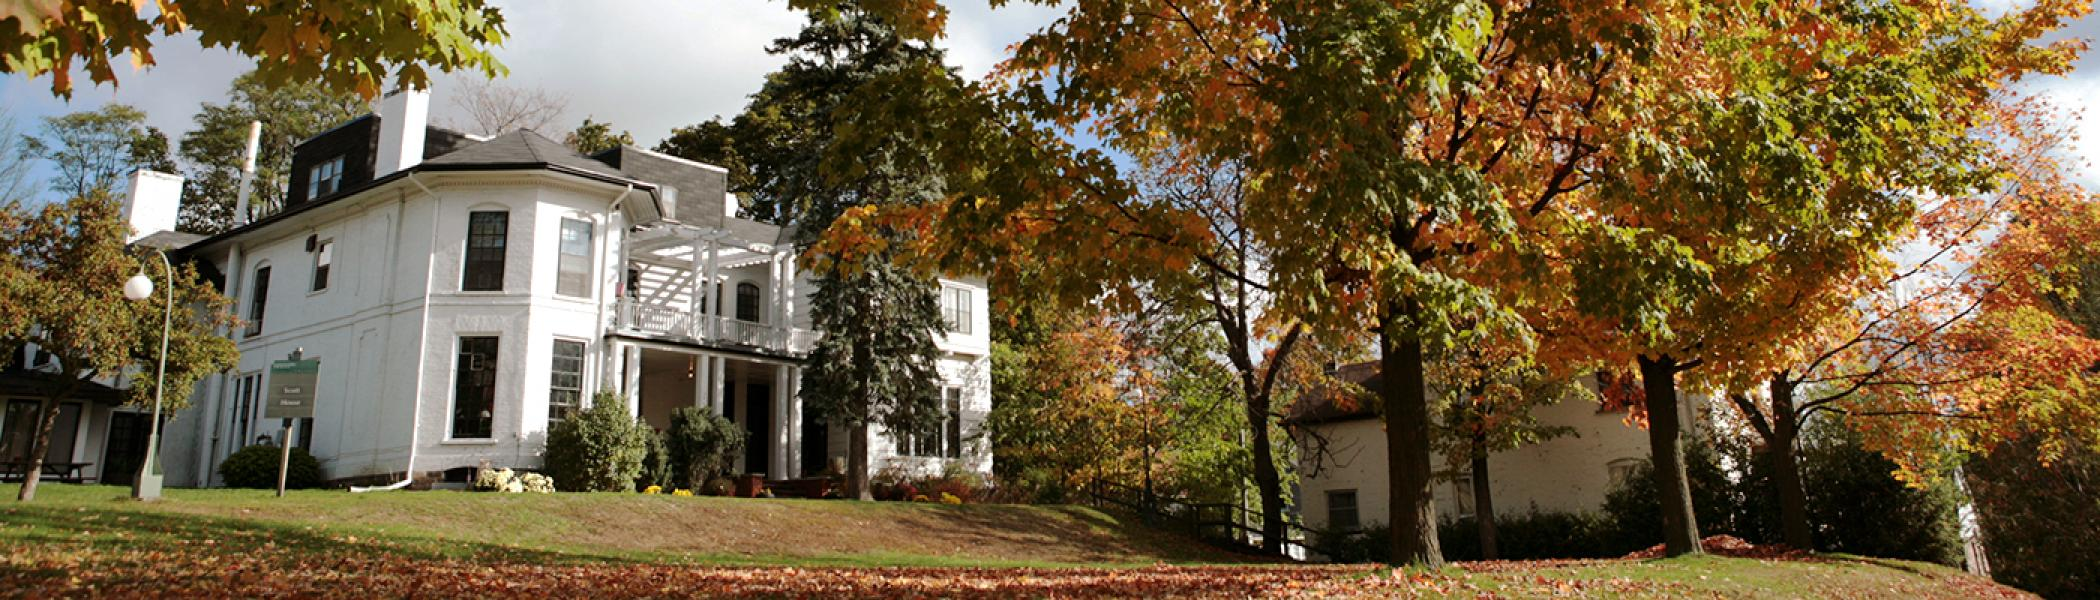 Traill College main white building on the hill in the fall leaves